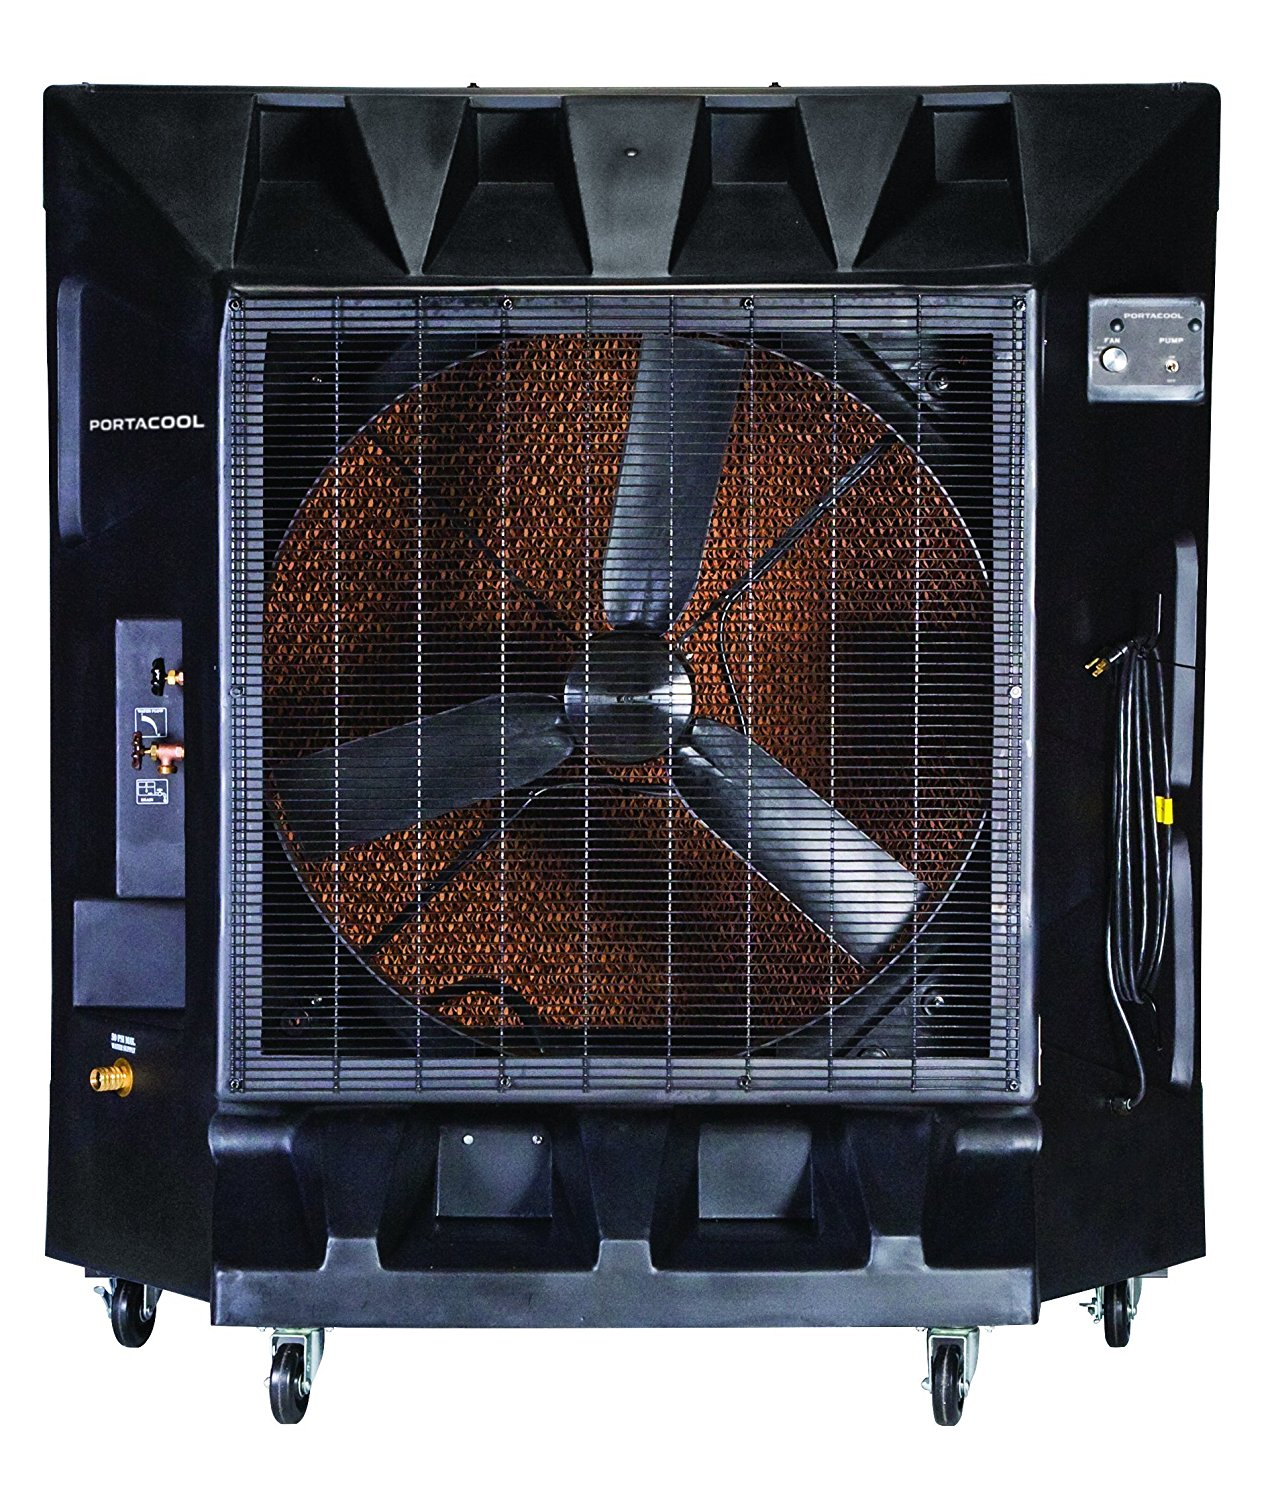 Portacool Variable Speed Evaporative Cooler